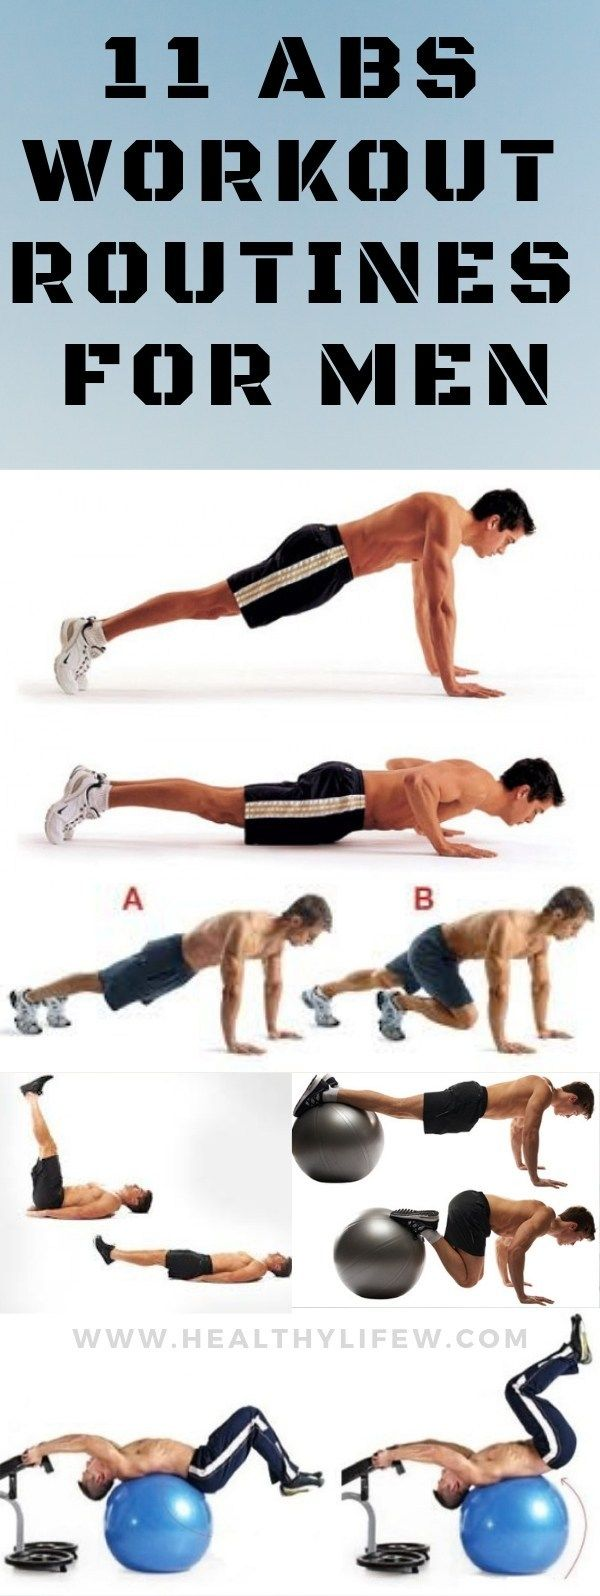 11 ABS WORKOUT ROUTINE FOR MEN TO GET A SIX PACK FAST – Workouts